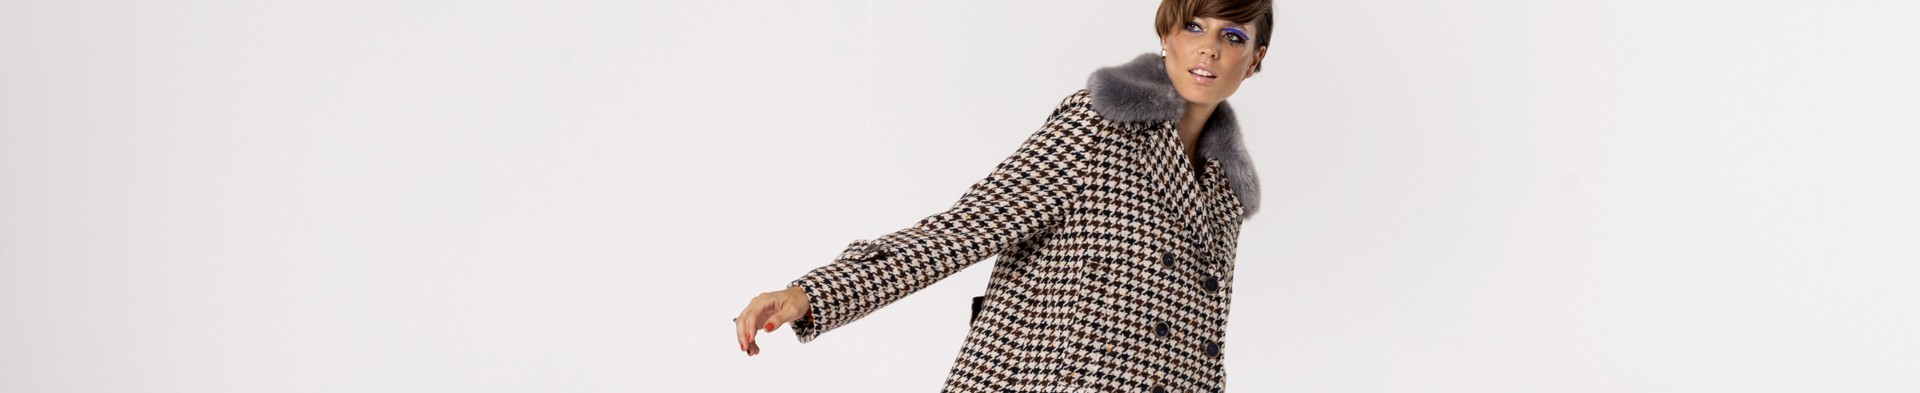 Sweet Prices Woman Coats - fall winter 2018 - Maison Lener